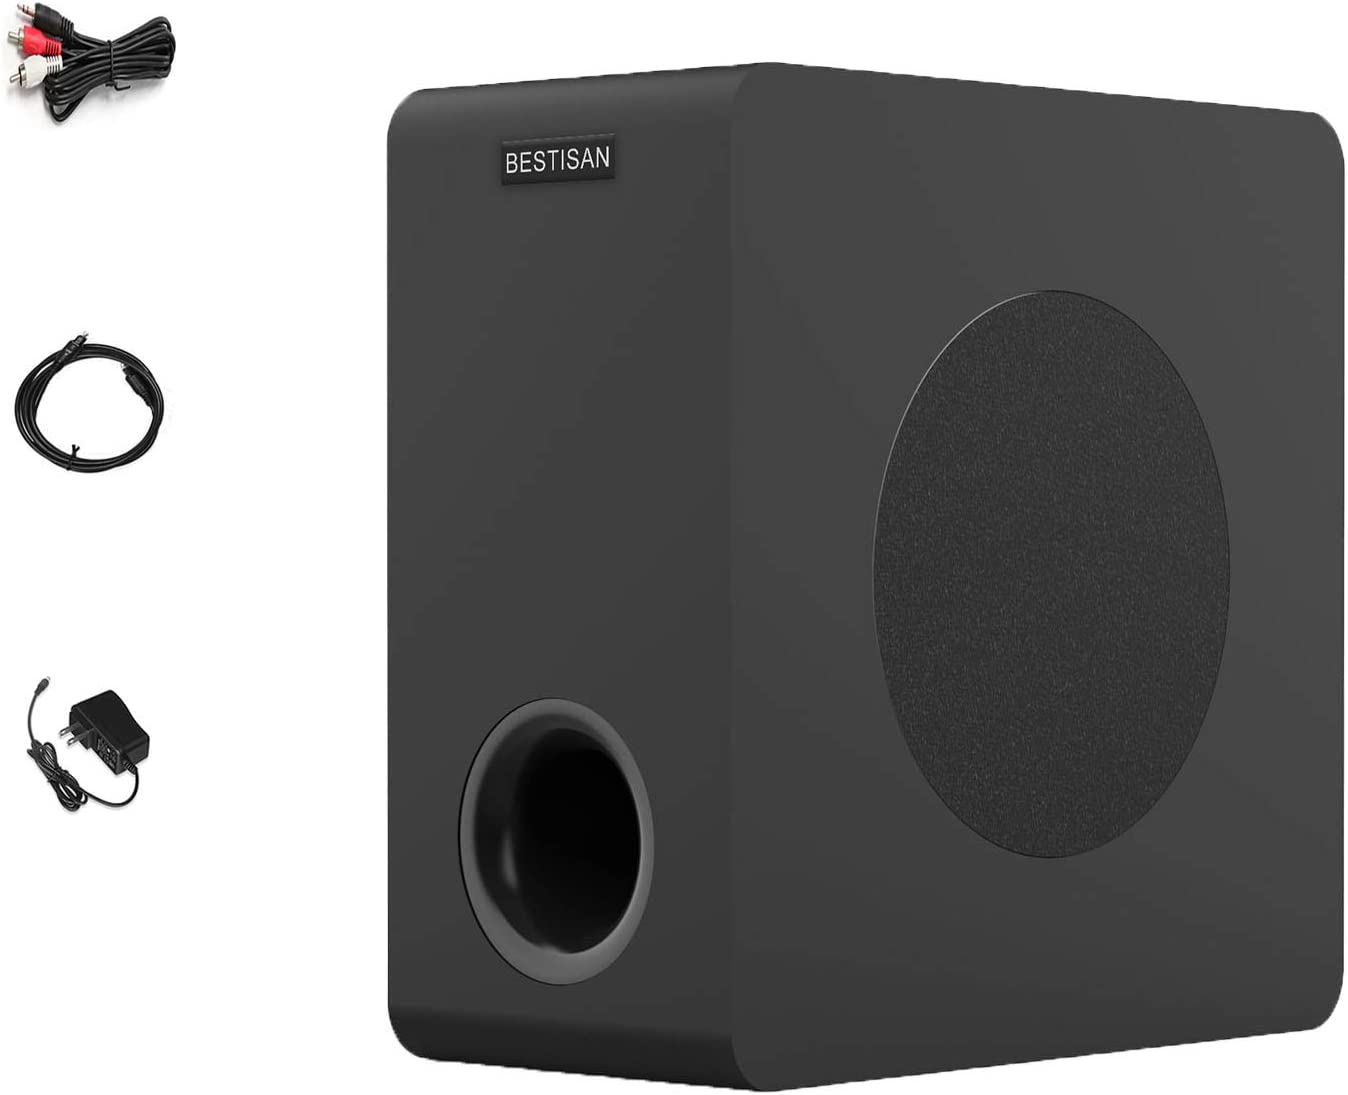 BESTISAN Powered Subwoofer, Compact Subwoofer for Home Audio Theater, Deep Base, Built-in Amplifier Wireless Subwoofer for TV, Optical/RCA/Bluetooth (6.5 Inch, Black,)